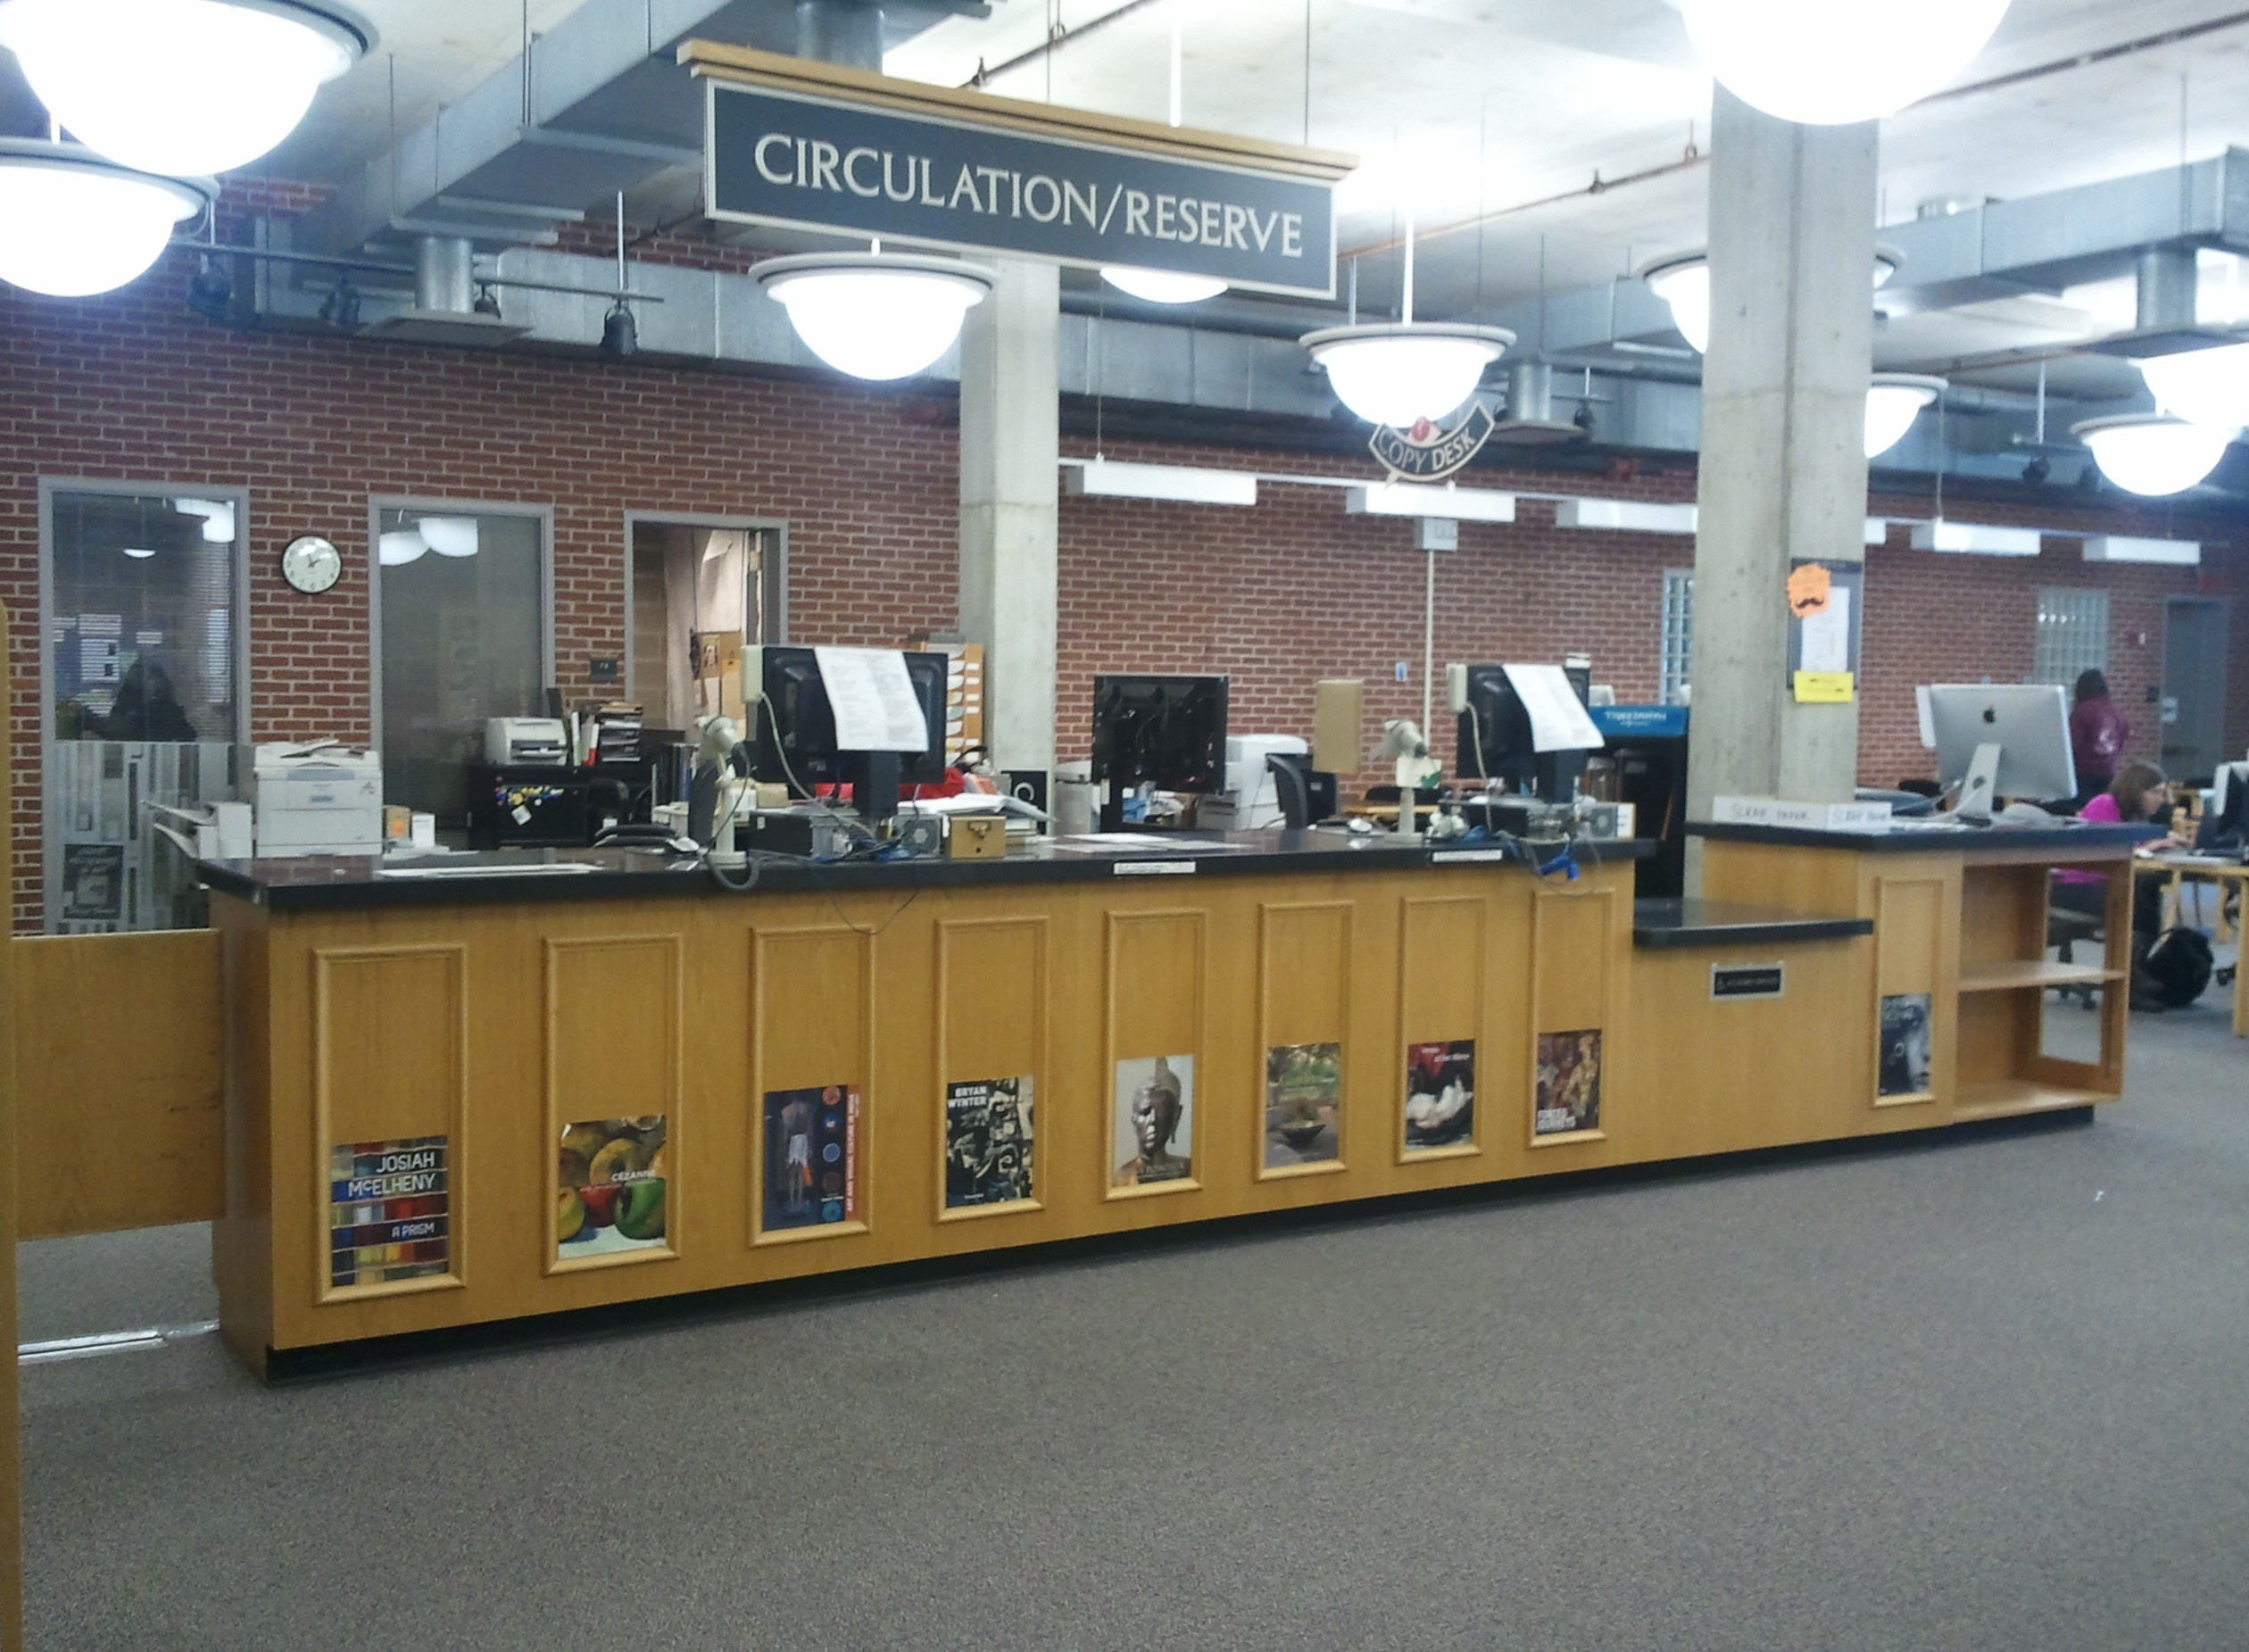 Wertz Art & Architecture library circulation desk photo